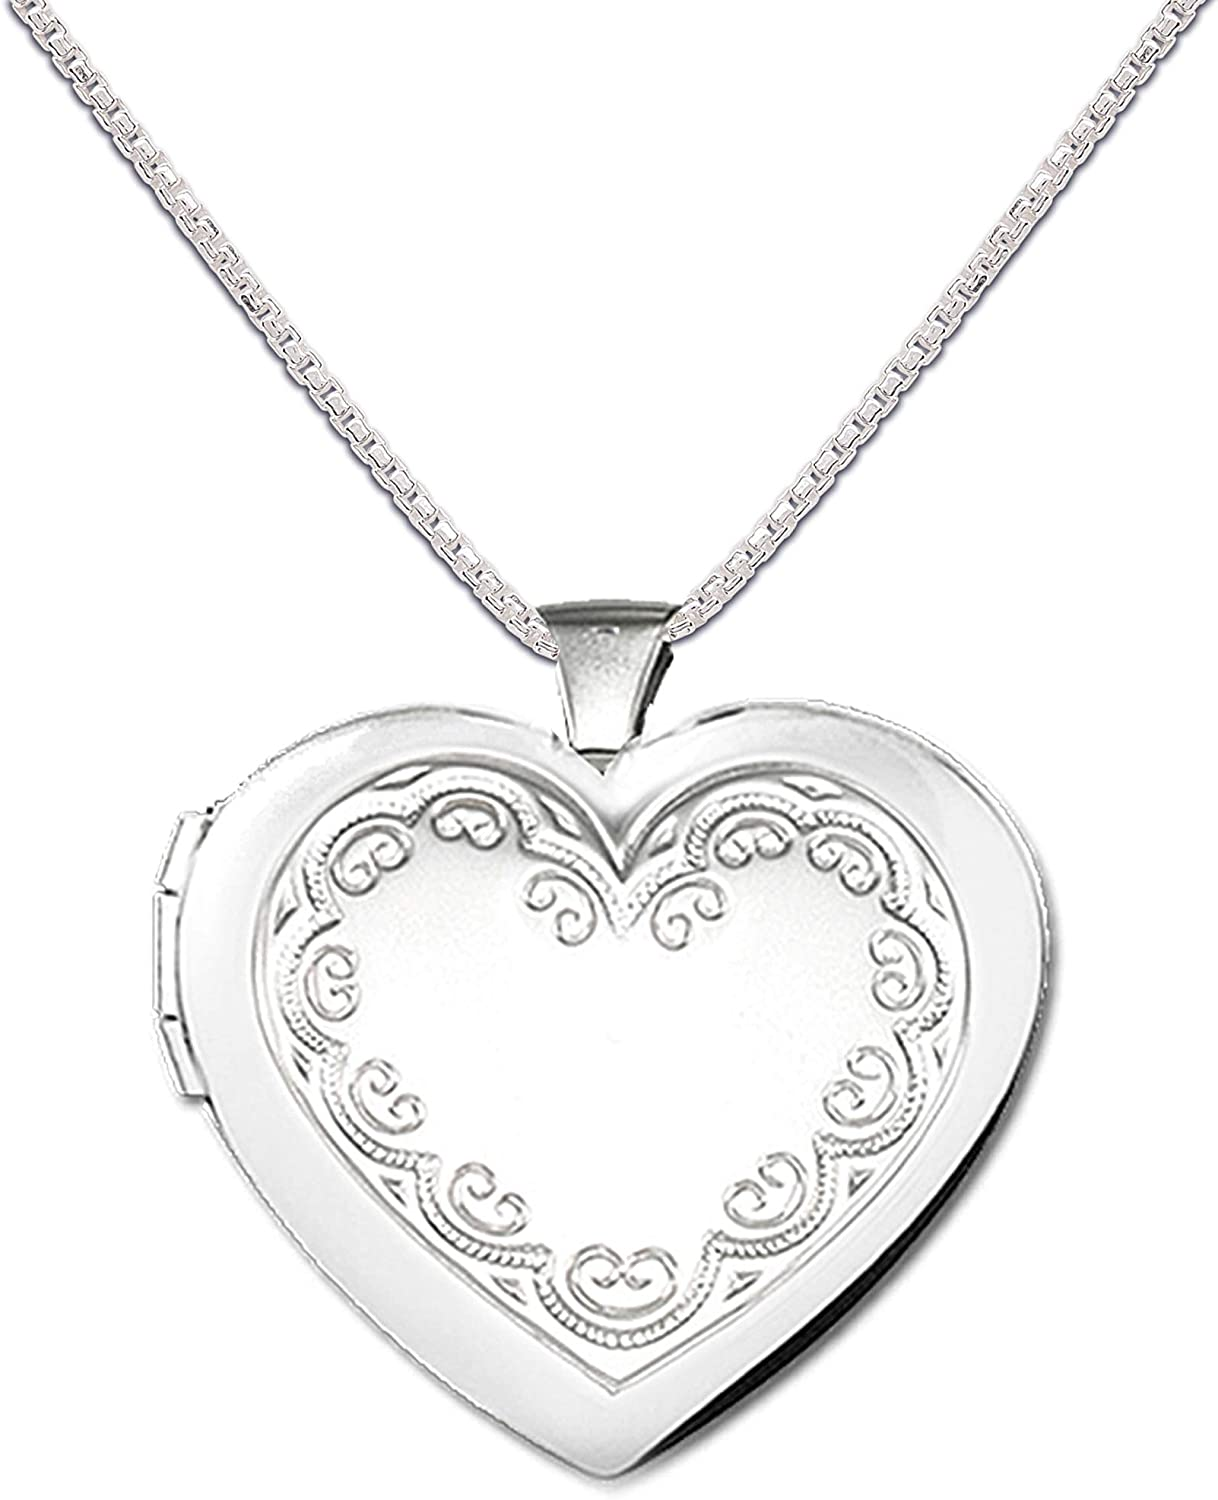 Girl's Phoenix Max 82% OFF Mall or Women's Sterling Silver Nec Heart Locket Embellished